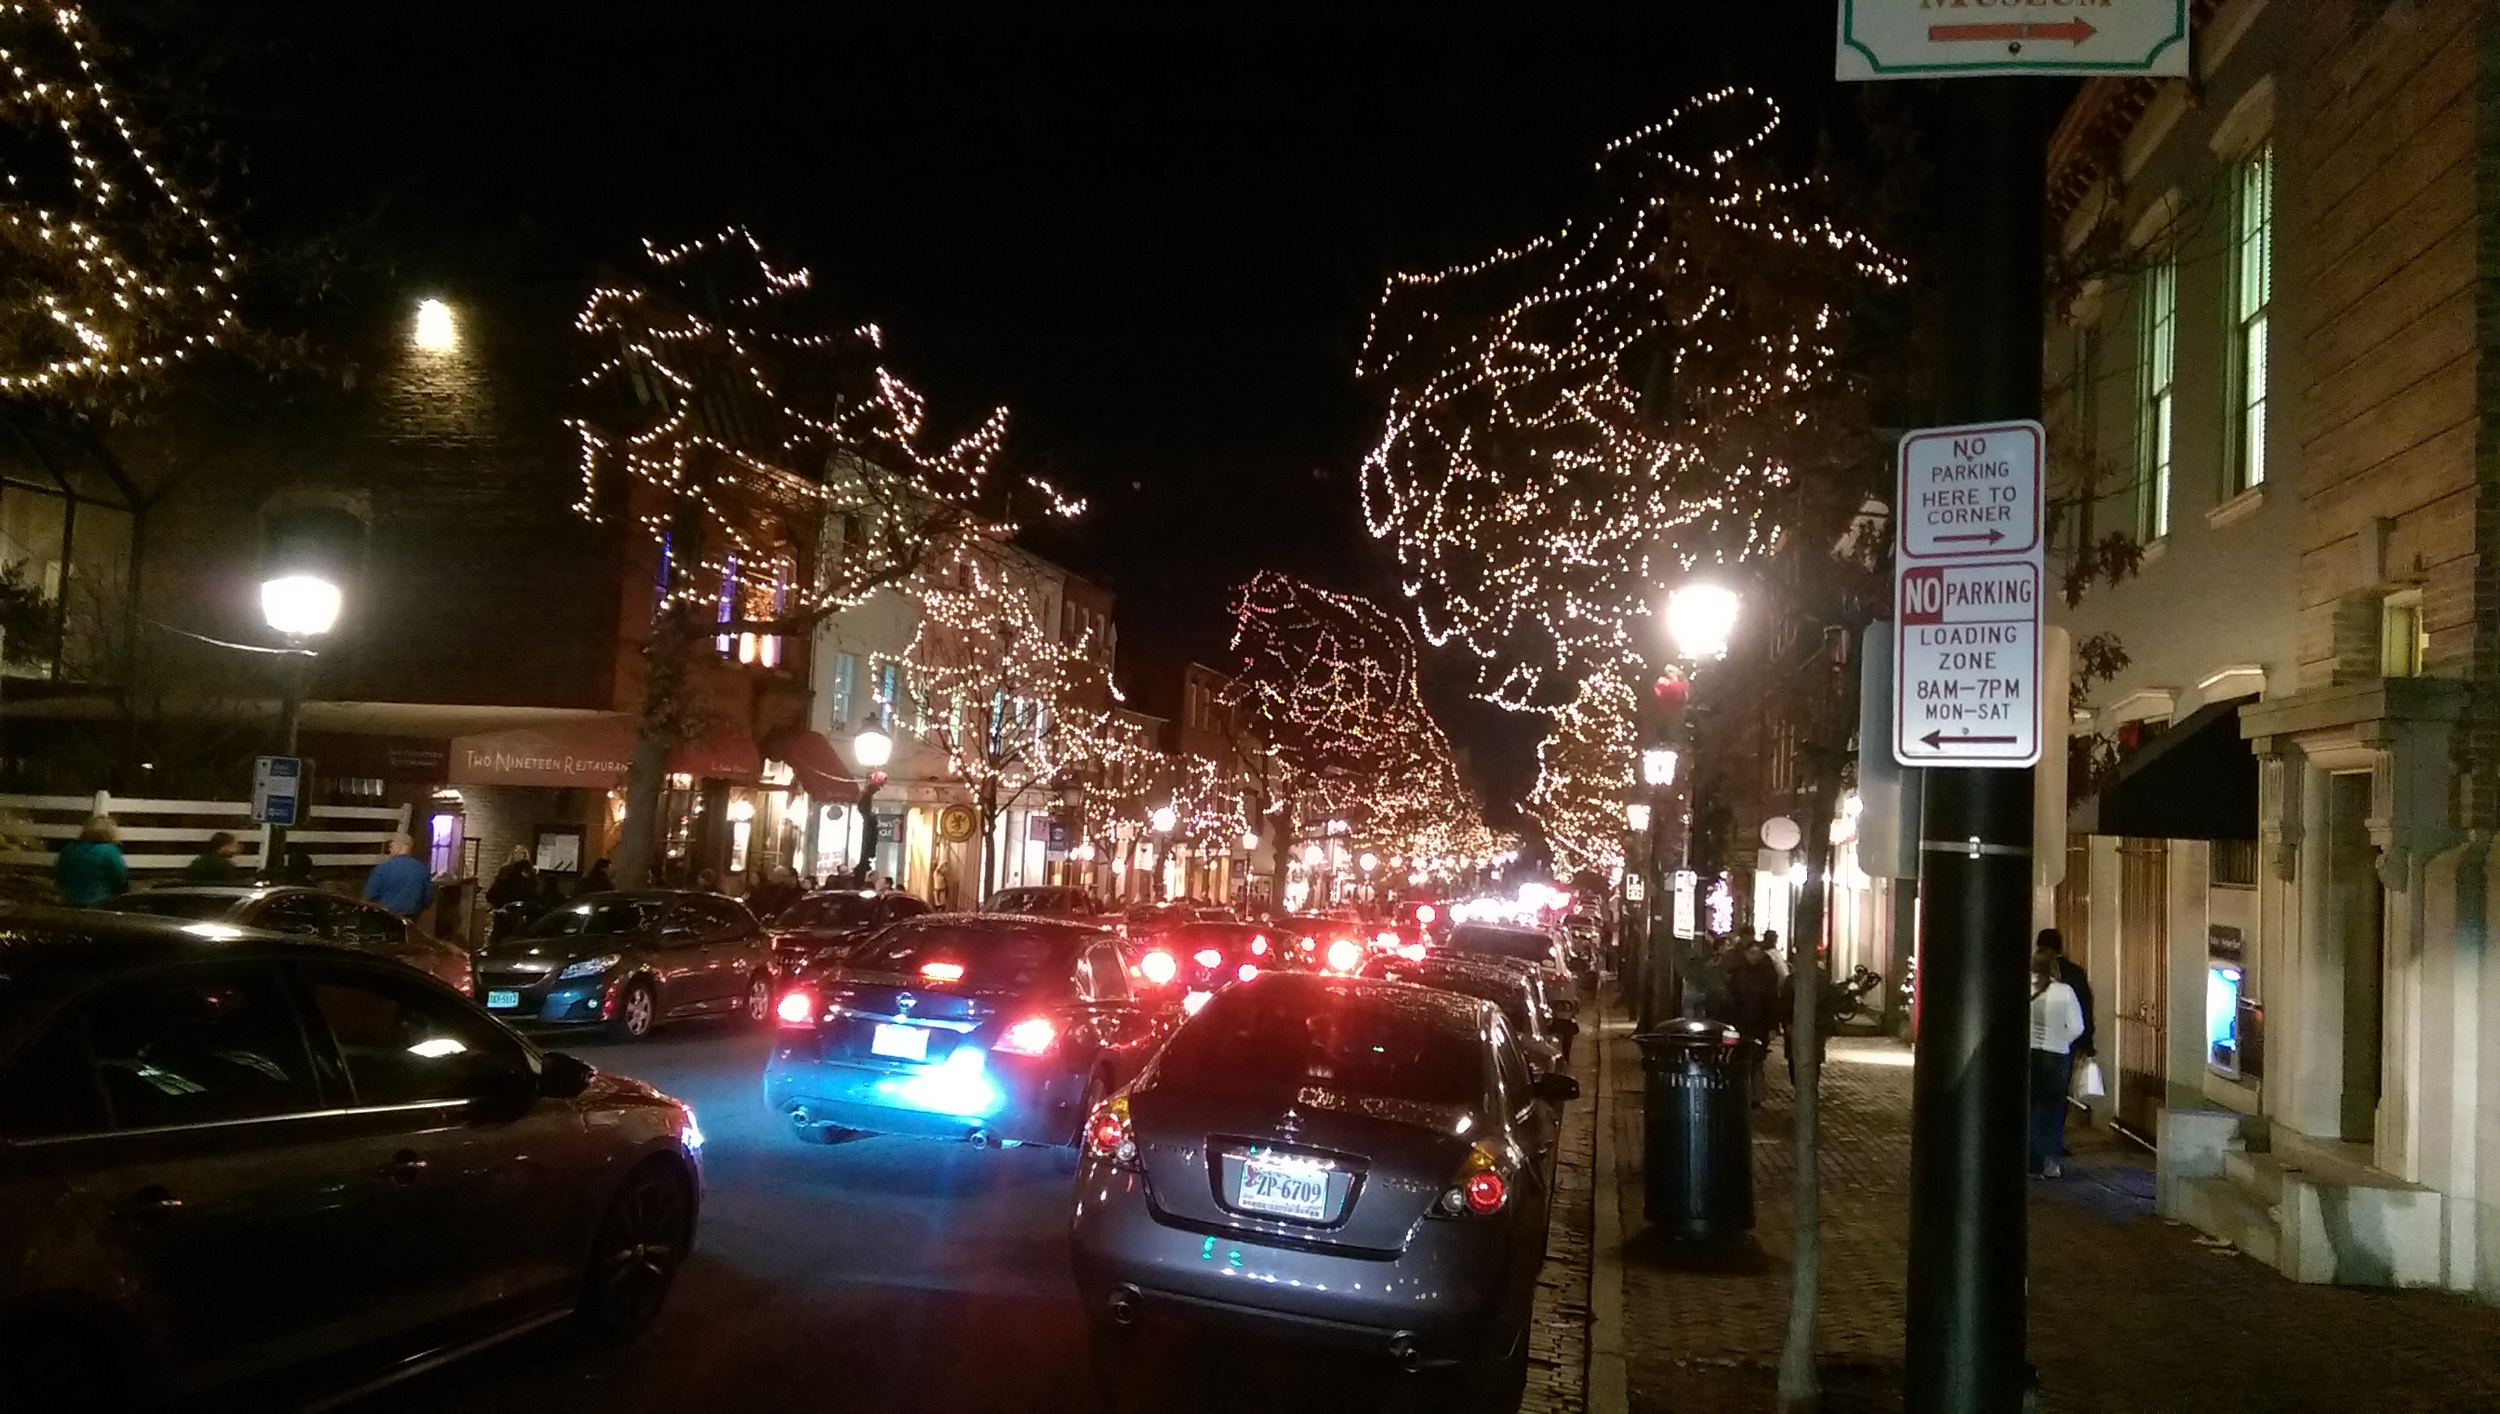 The busy streets of Old Town Alexandria